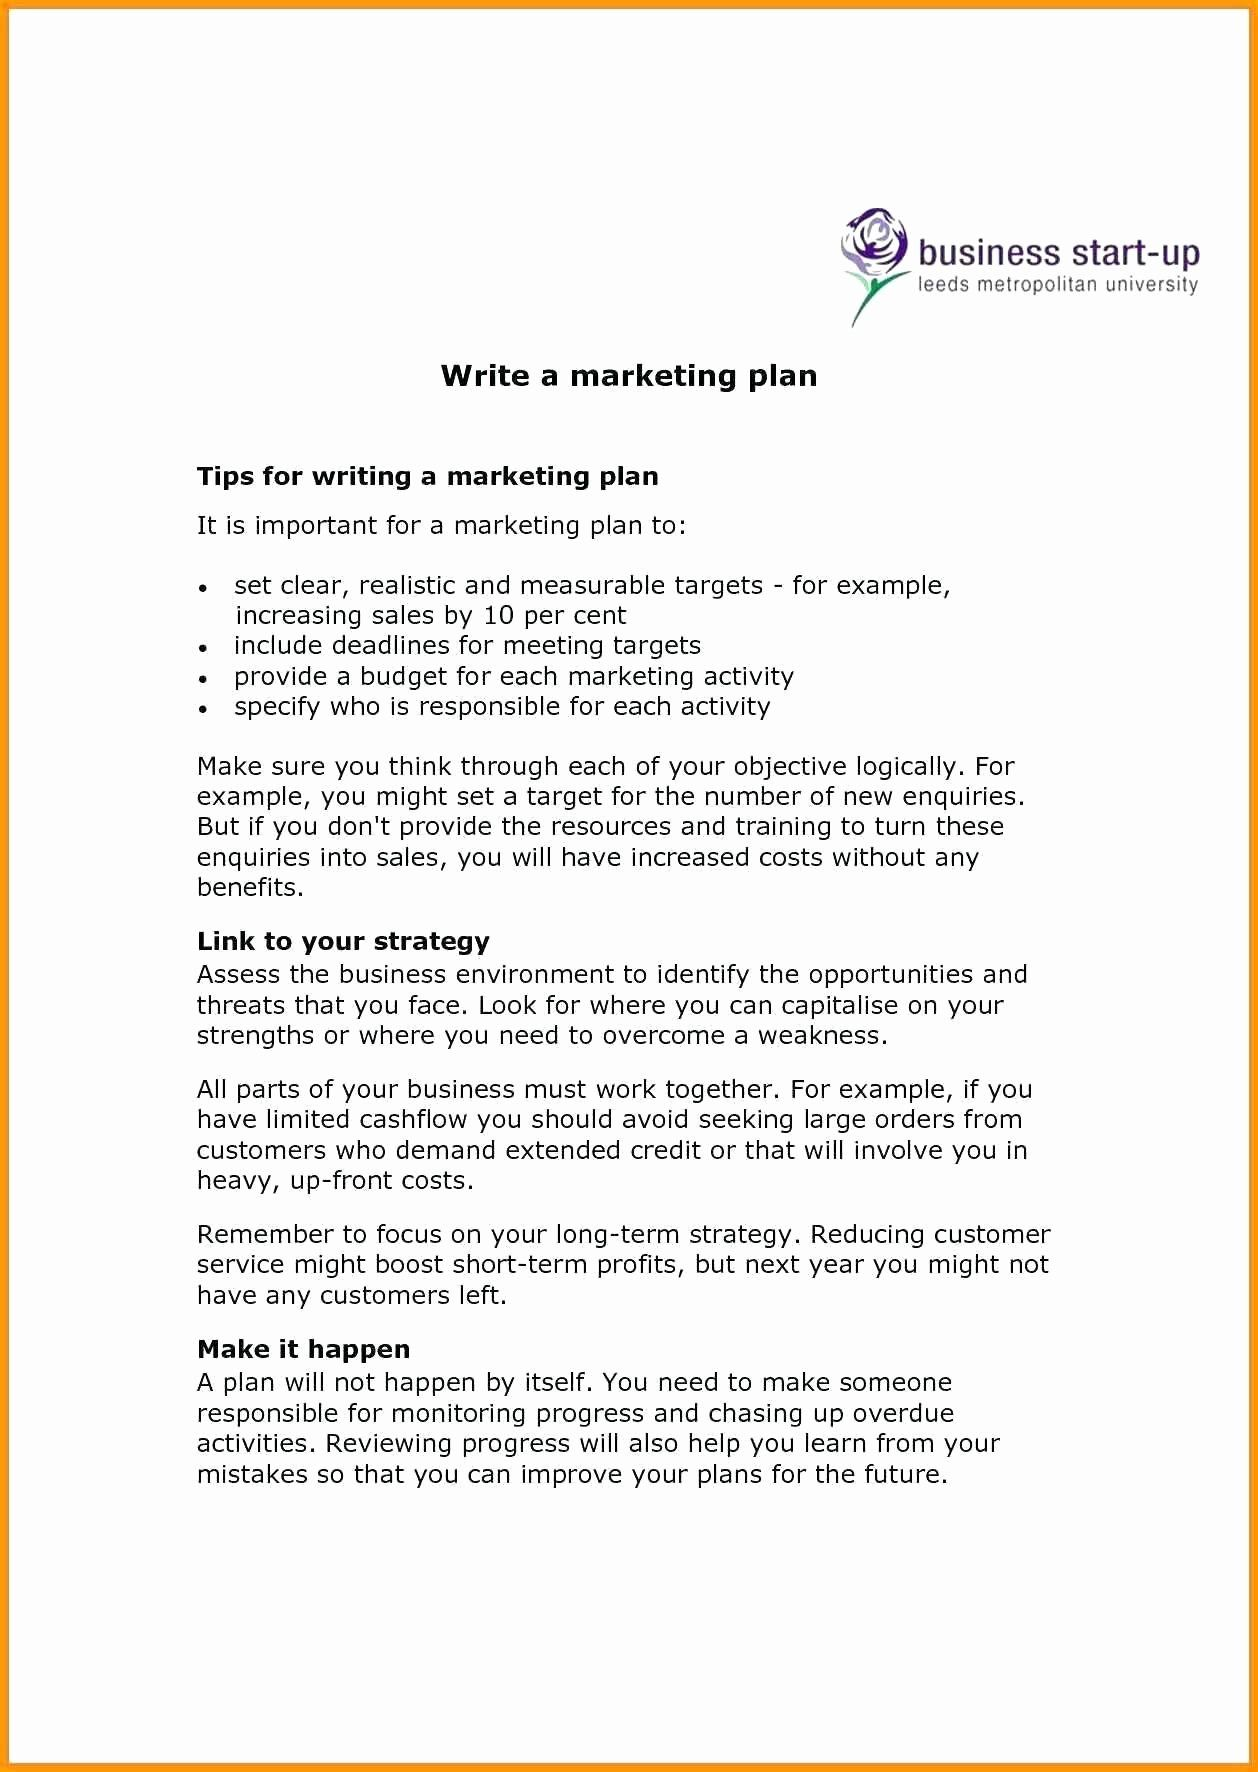 30 Franchise Business Plan Template in 2020 Marketing